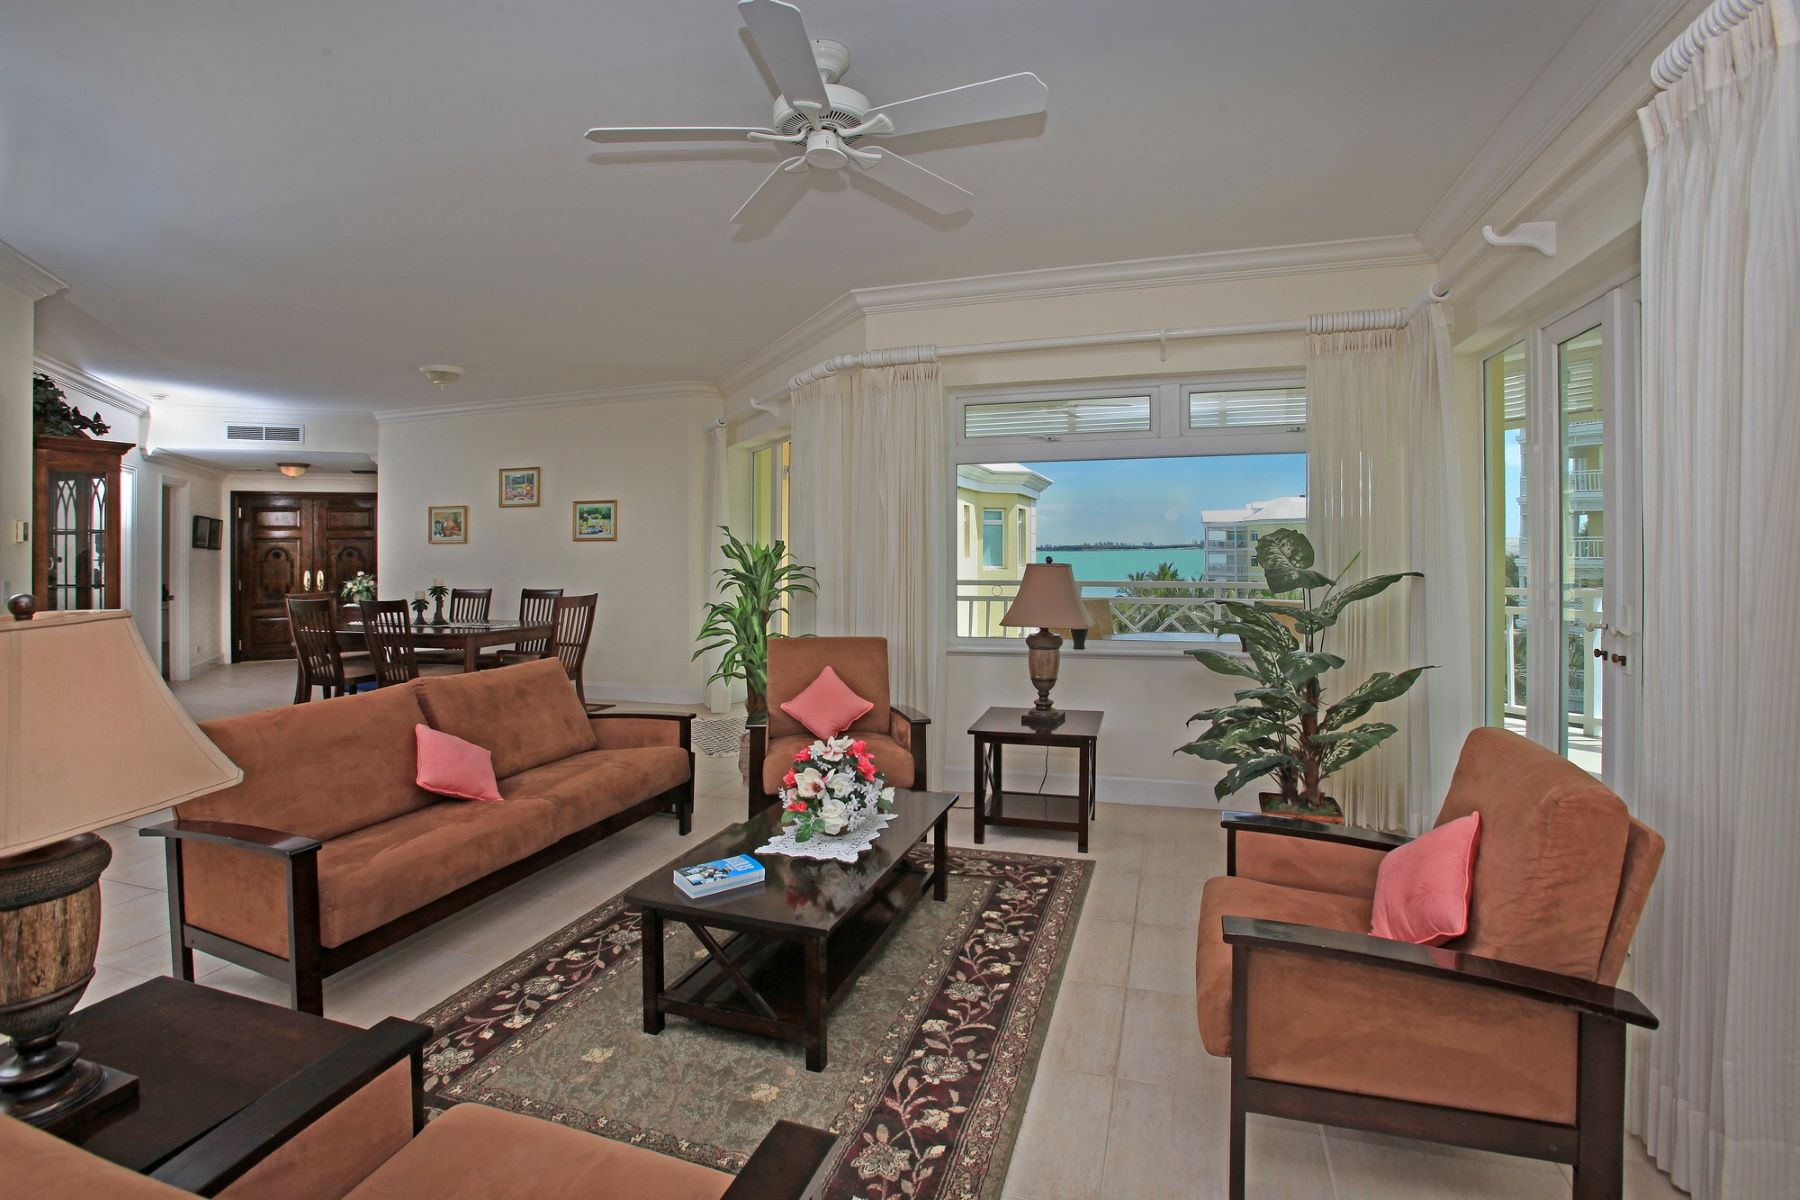 Apartment for Sale at Bayroc 404 Bayroc, Cable Beach, Nassau And Paradise Island Bahamas